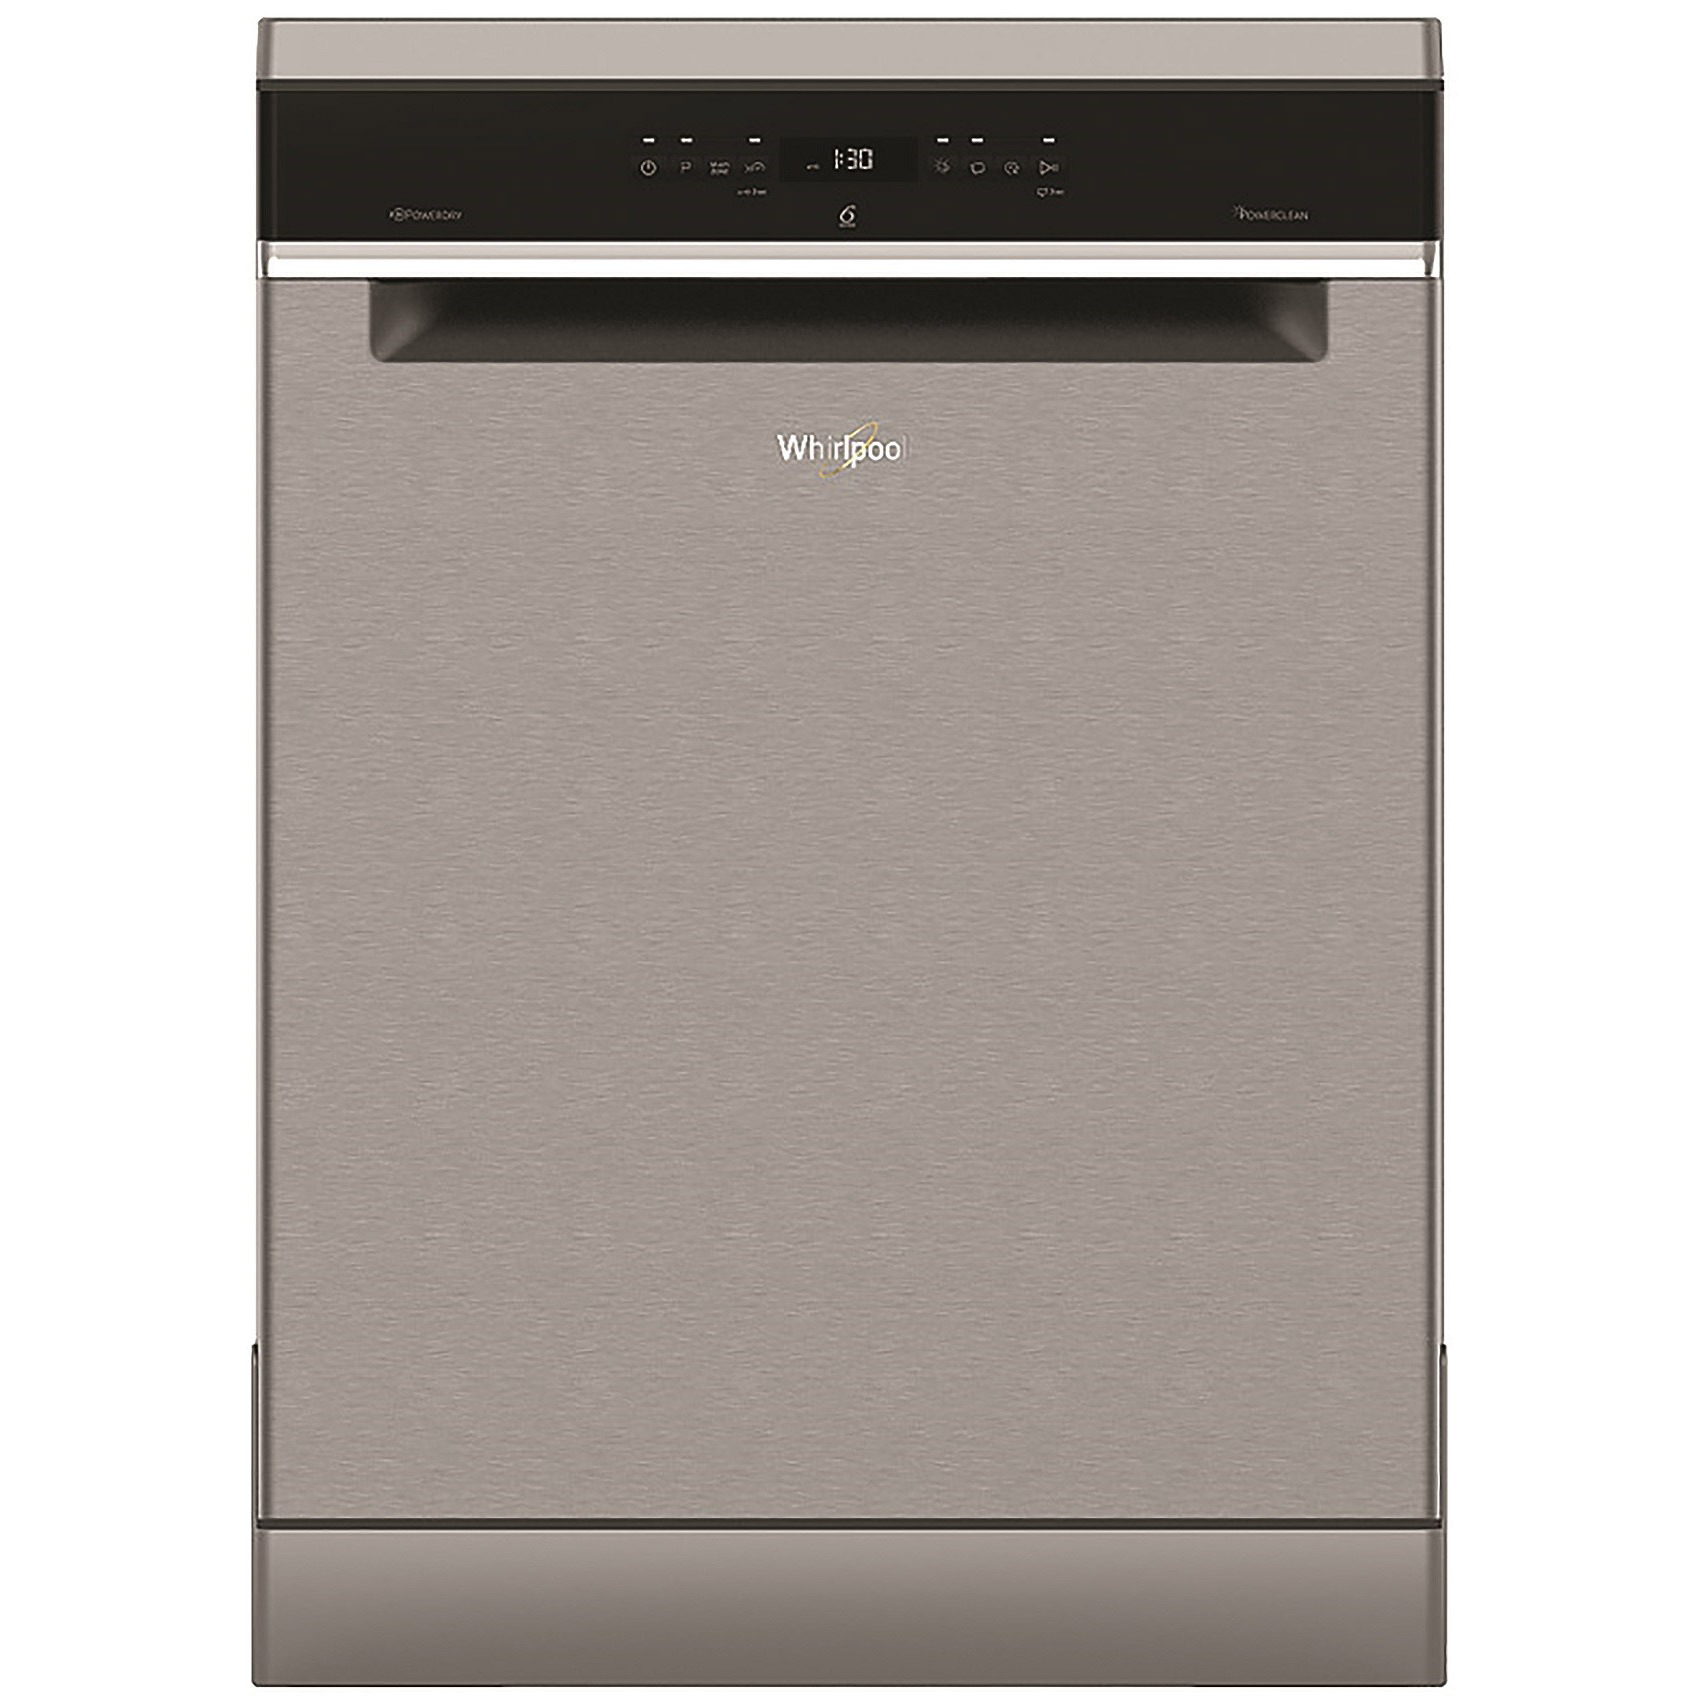 WHIRLPOOL DISH WASHER WFO3P33 DELUX